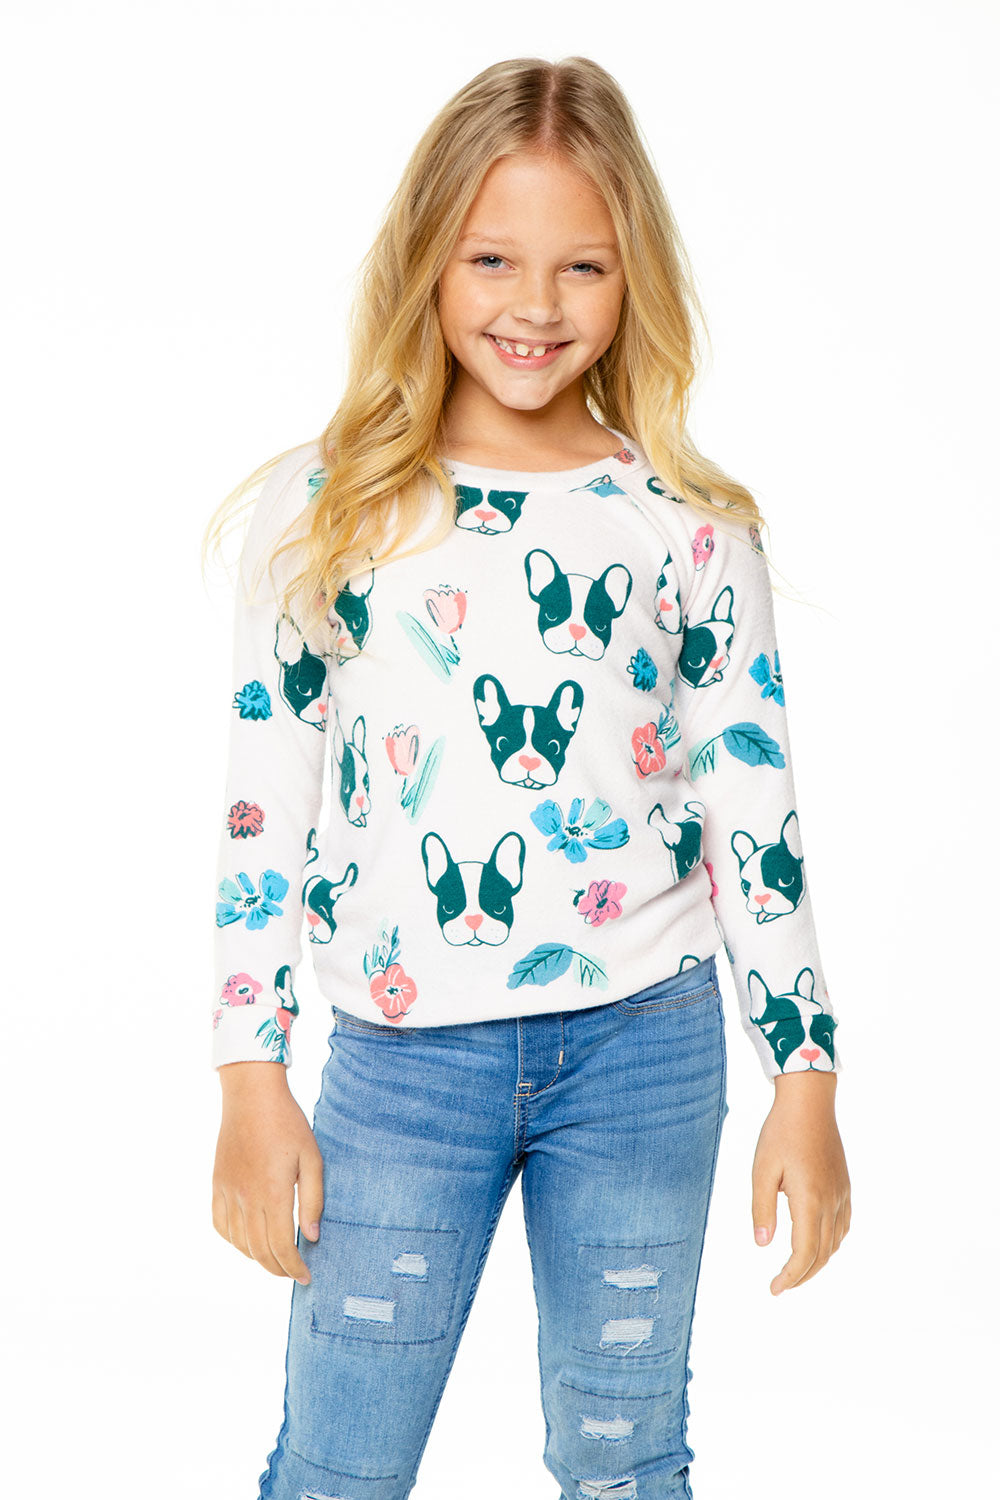 Dogs and Flowers Charity Sweatshirt GIRLS chaserbrand4.myshopify.com